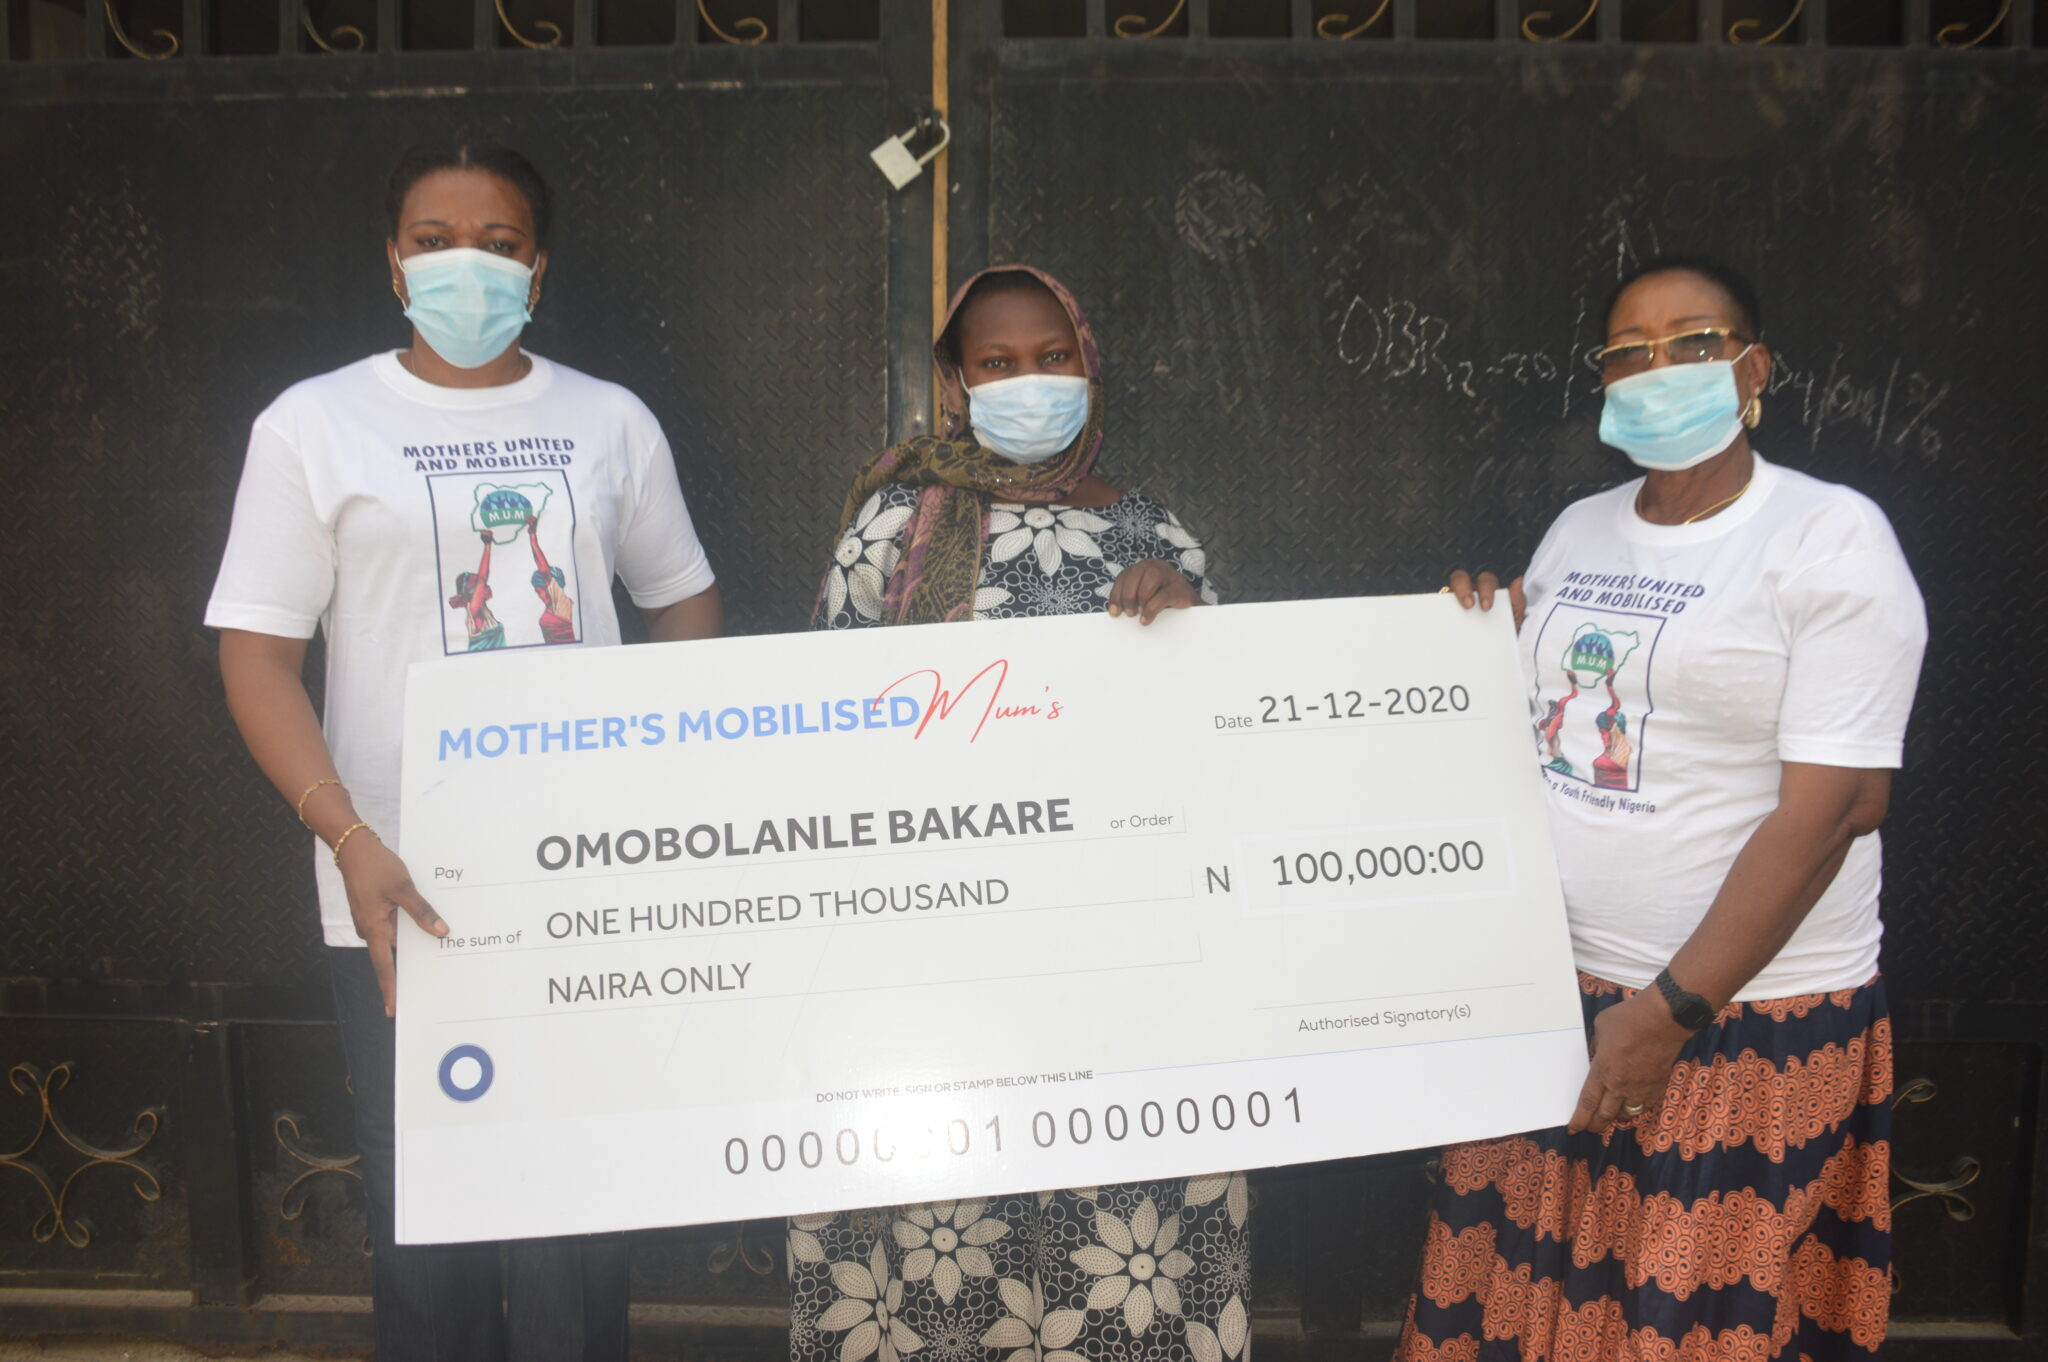 Presenting a cheque to support Omobolanle Bakare, (Middle) whose husband, Kareem Rasheed, was killed by stray bullet during the EndSARS protest in Lagos.